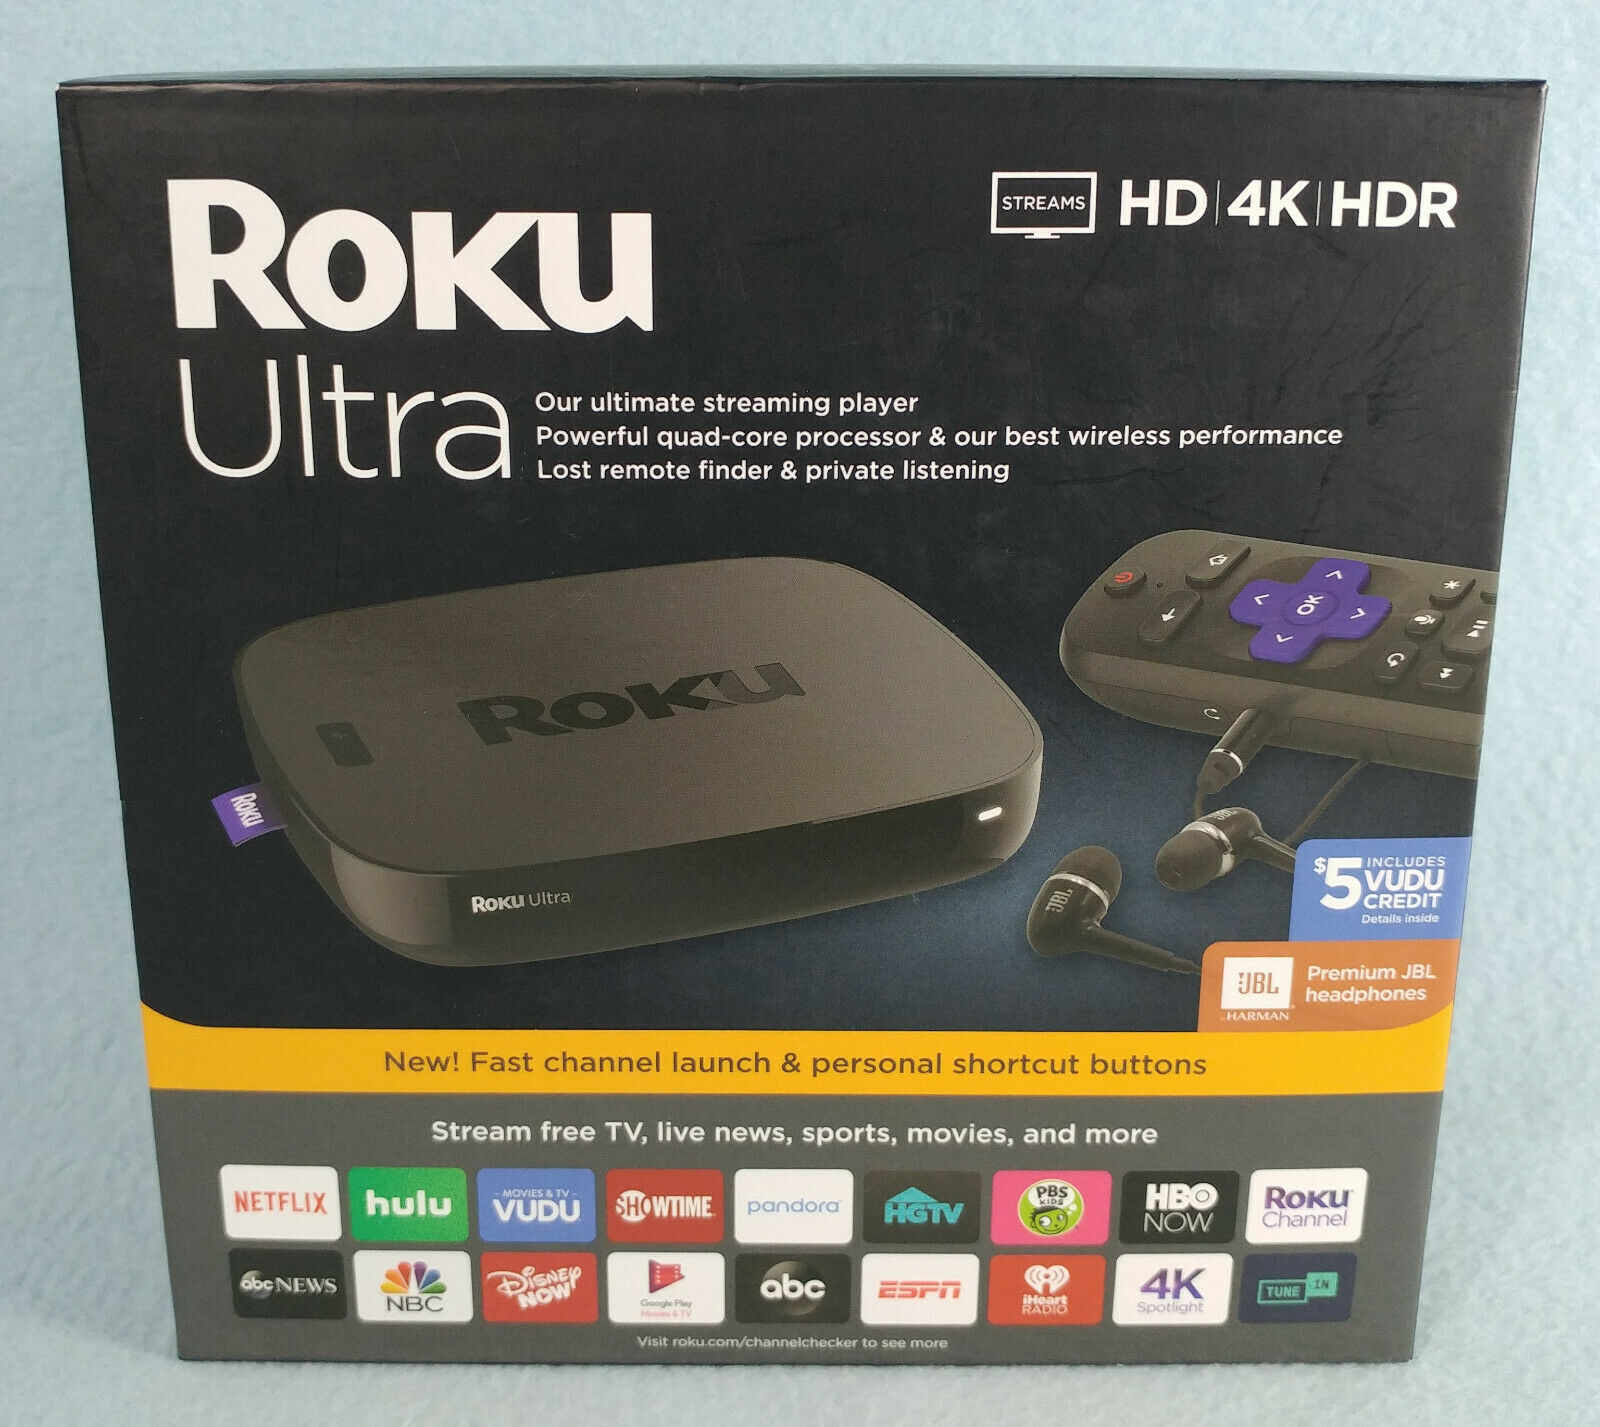 Roku Ultra 4670RW 4K/HD/HDR Streaming Media Player W/Premium JBL Headphones -New 4670rw headphones jbl media player roku streaming ultra